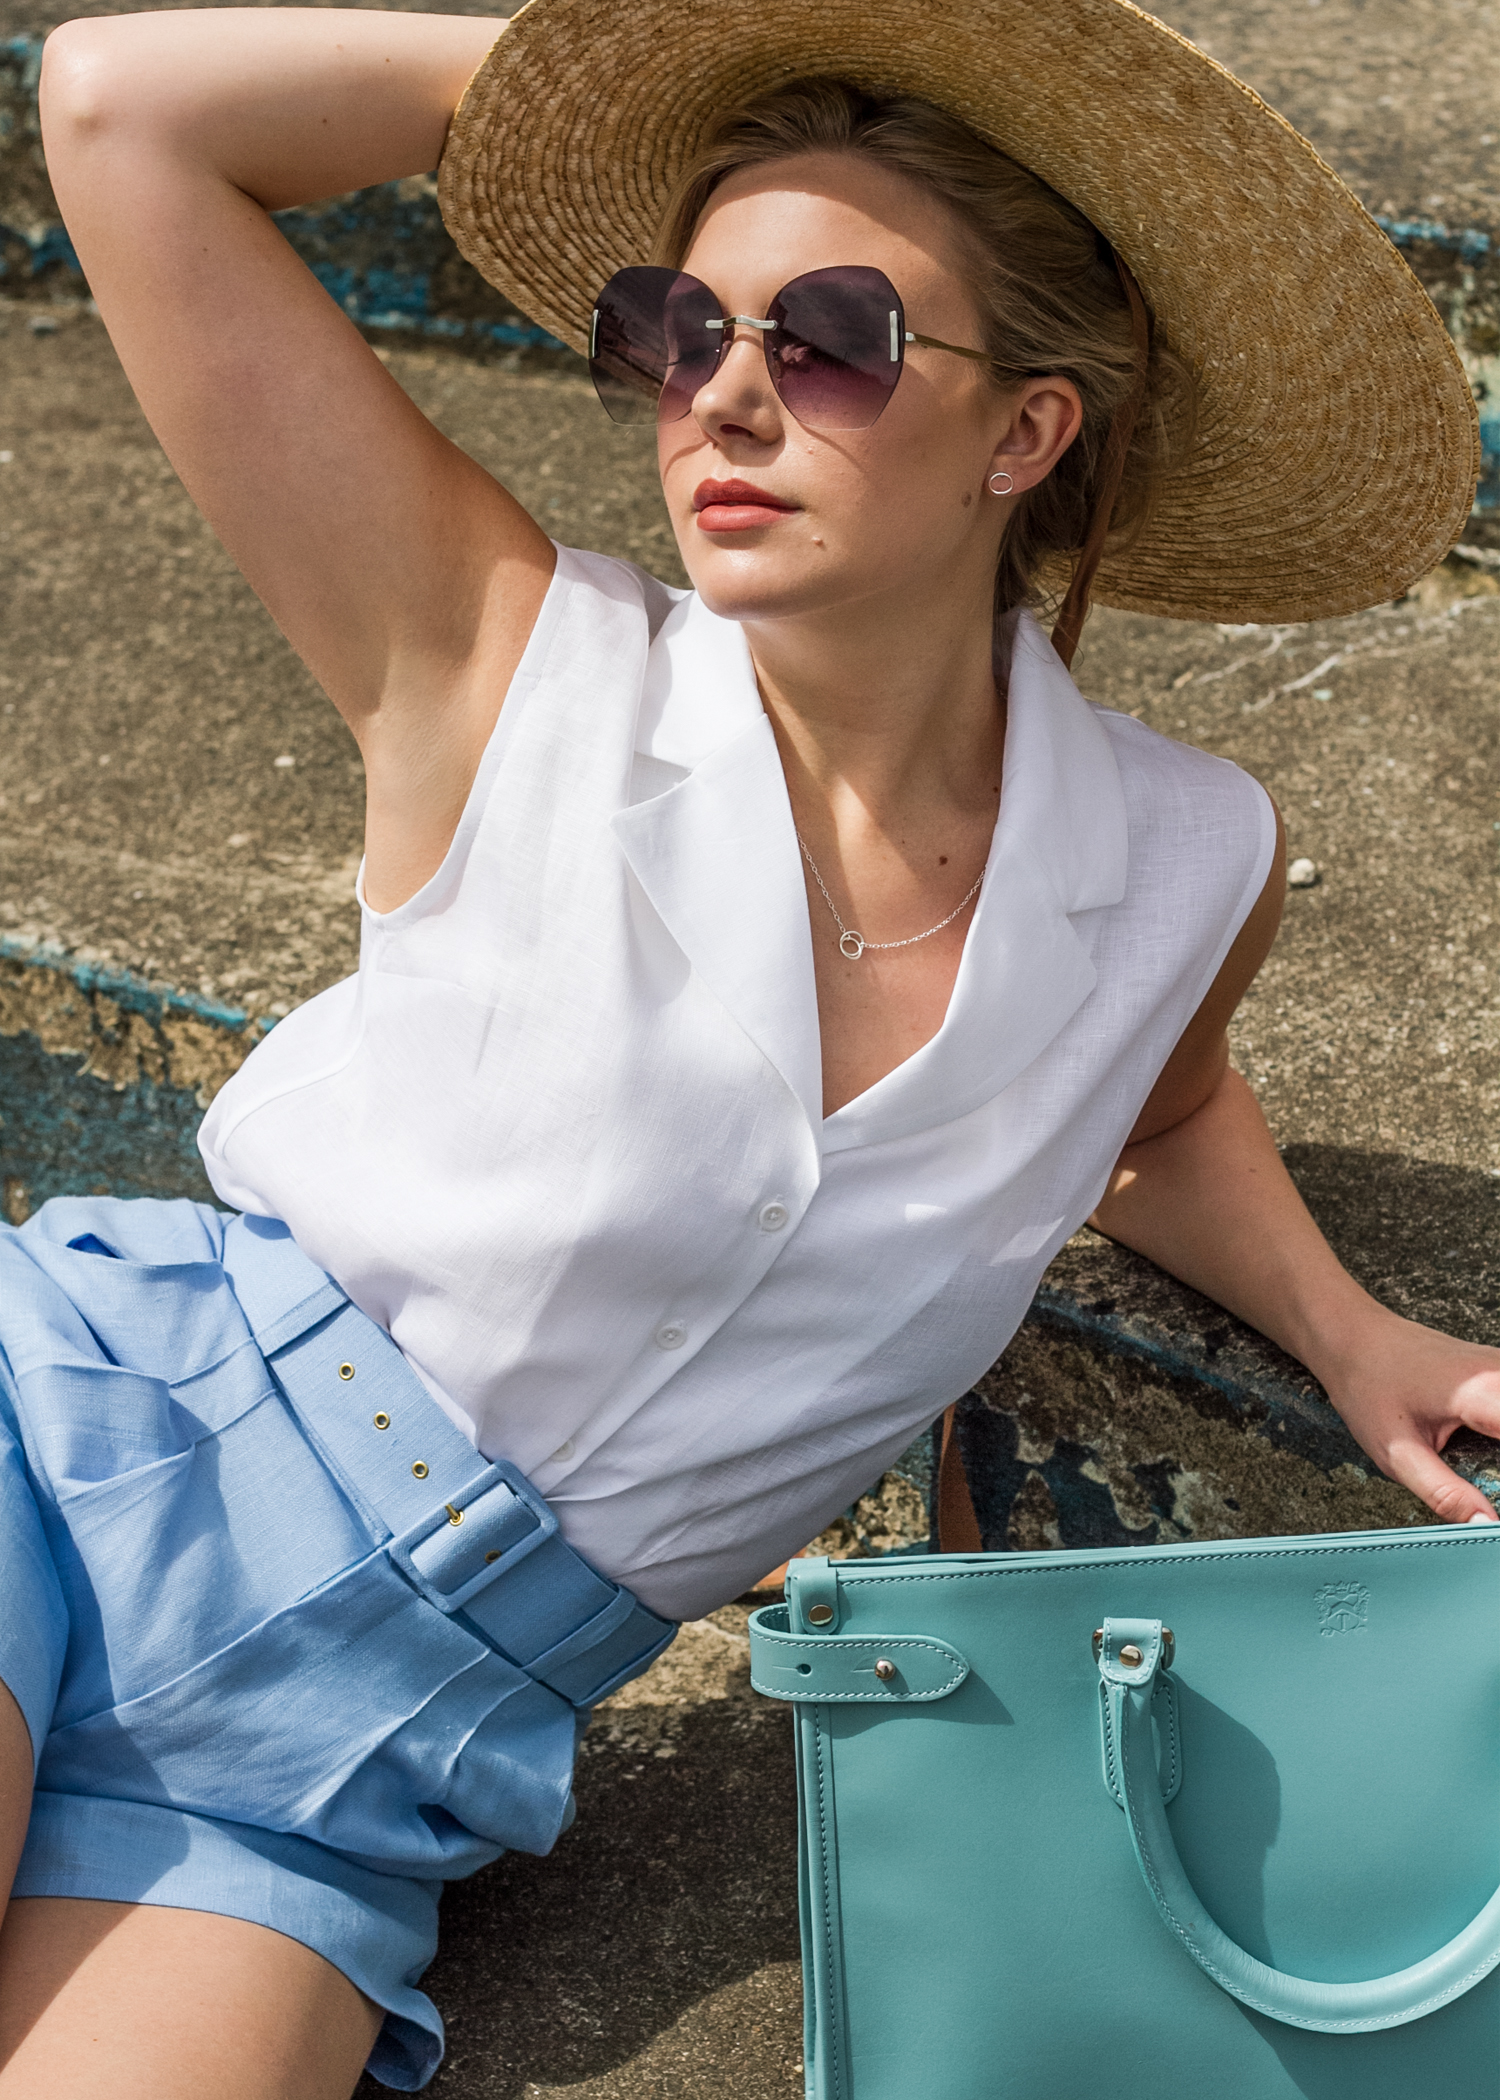 Final photograph from our summer shoot showing the new linen collection.  Model: Jessica Keable  Photographer: Heather Judge  Jewellery: Brass & Bold  Bag: Tusting